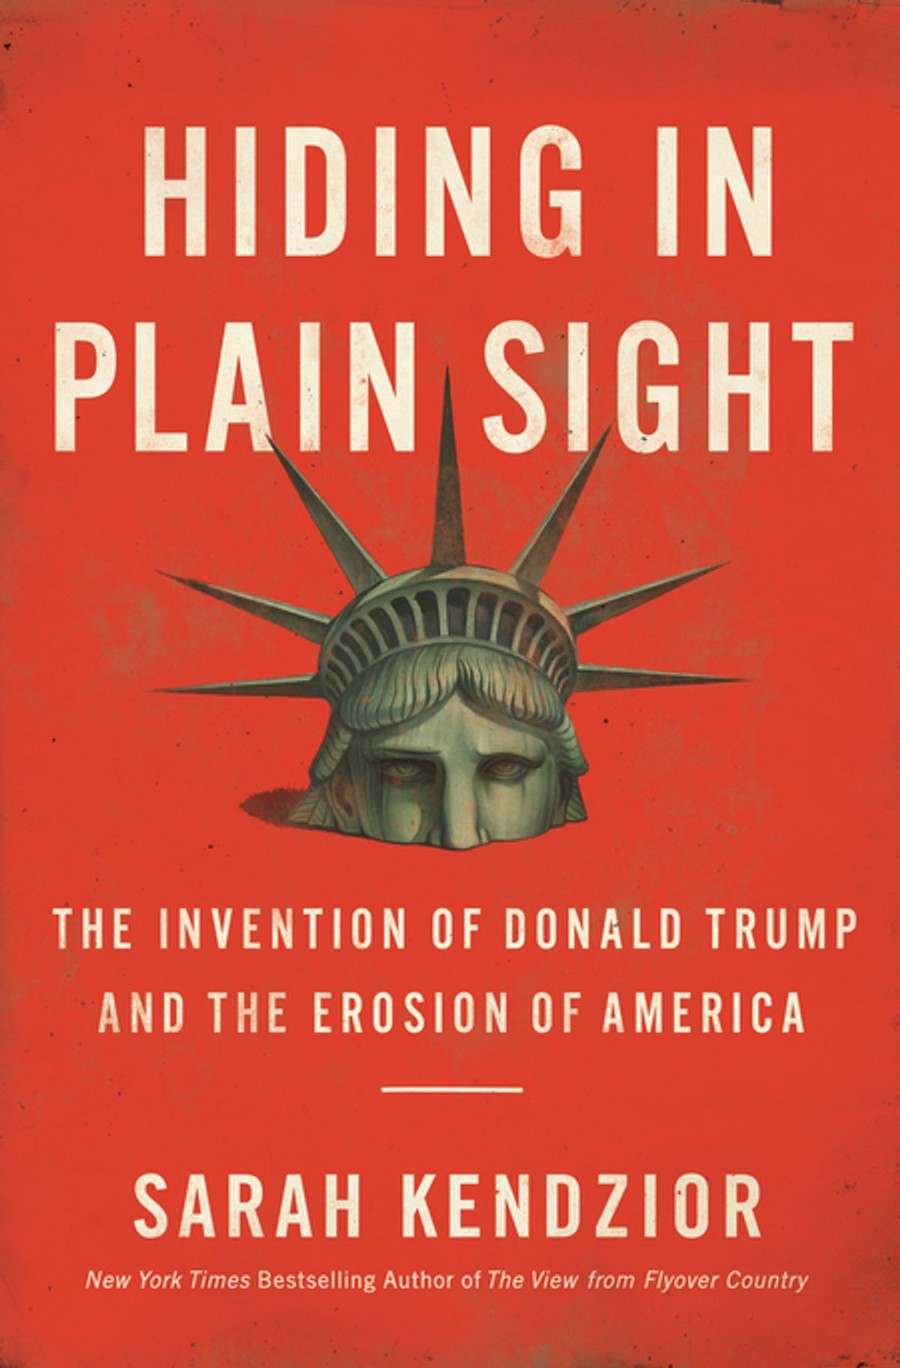 Hiding in Plain Sight, a red book cover cover that features an illustration of the Statue of Liberty sinking until only its crown is showing